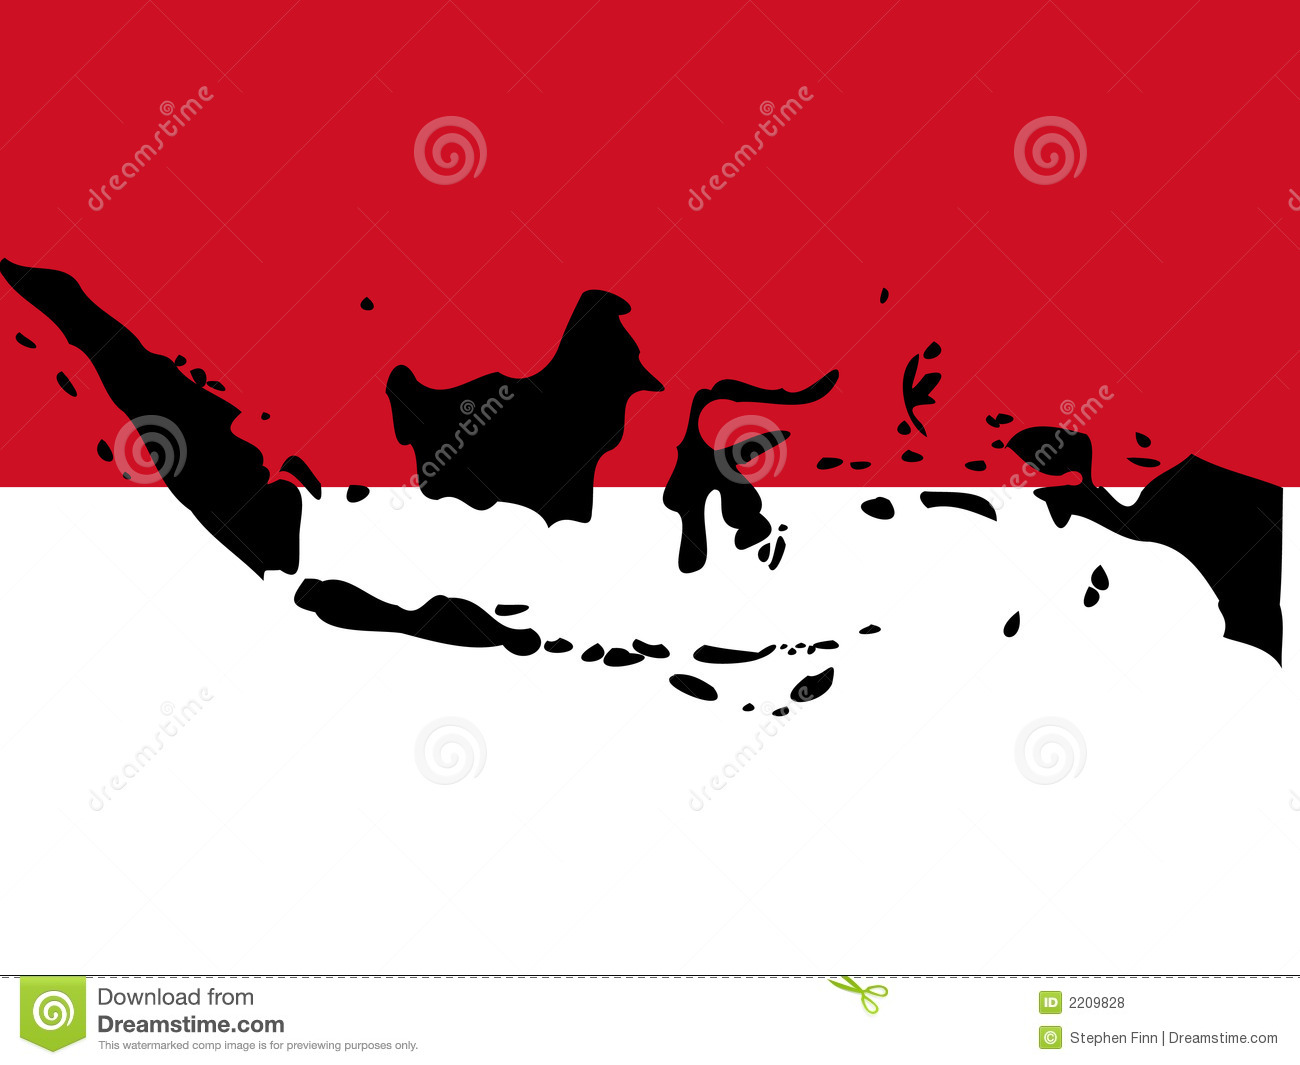 Indonesia map clipart clipart stock Map Of Indonesia Royalty Free Stock Photos - Image: 2209828 clipart stock